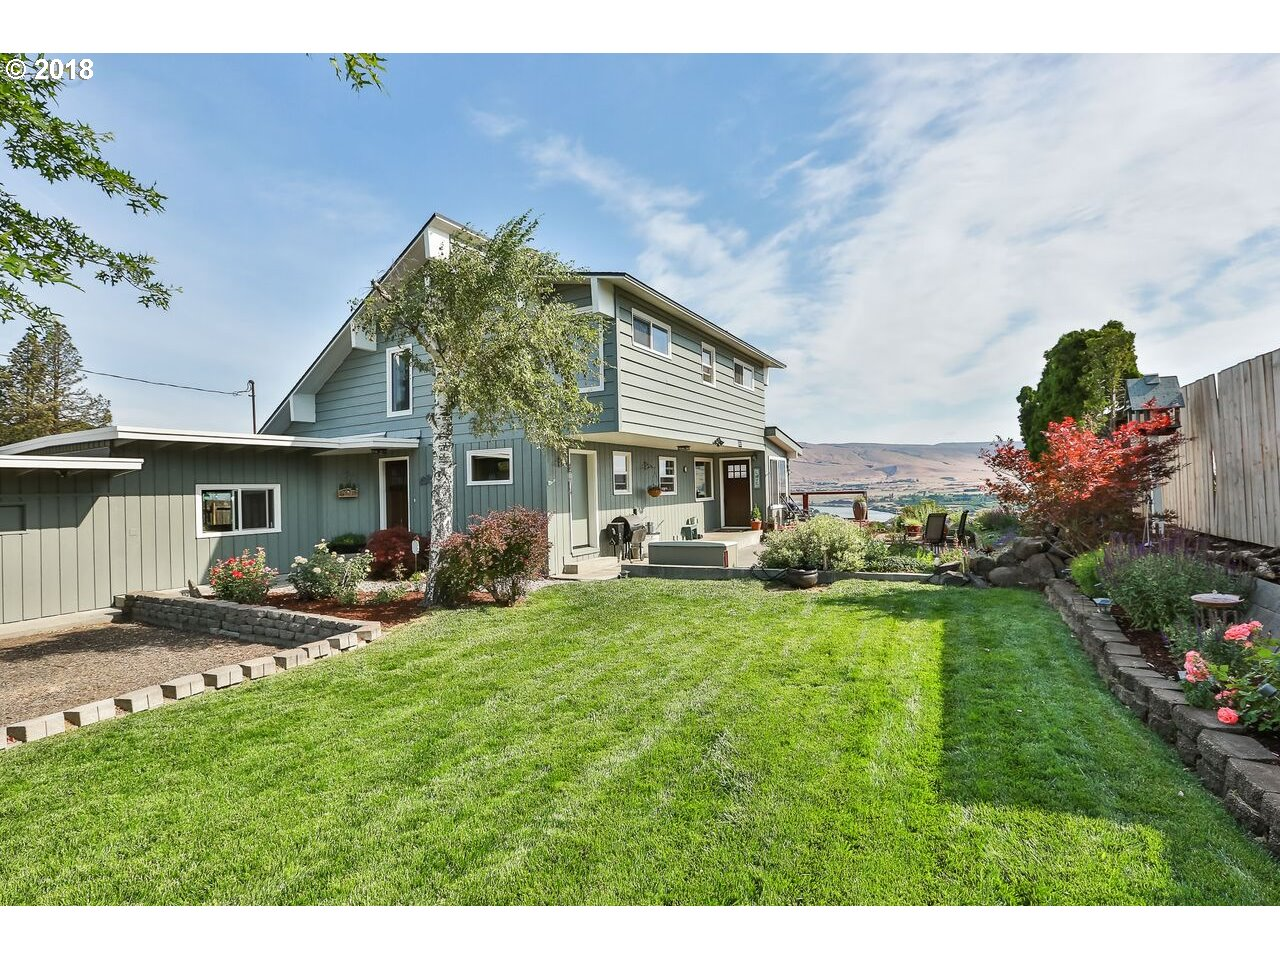 1325 HERMITS WAY, THE DALLES, OR 97058